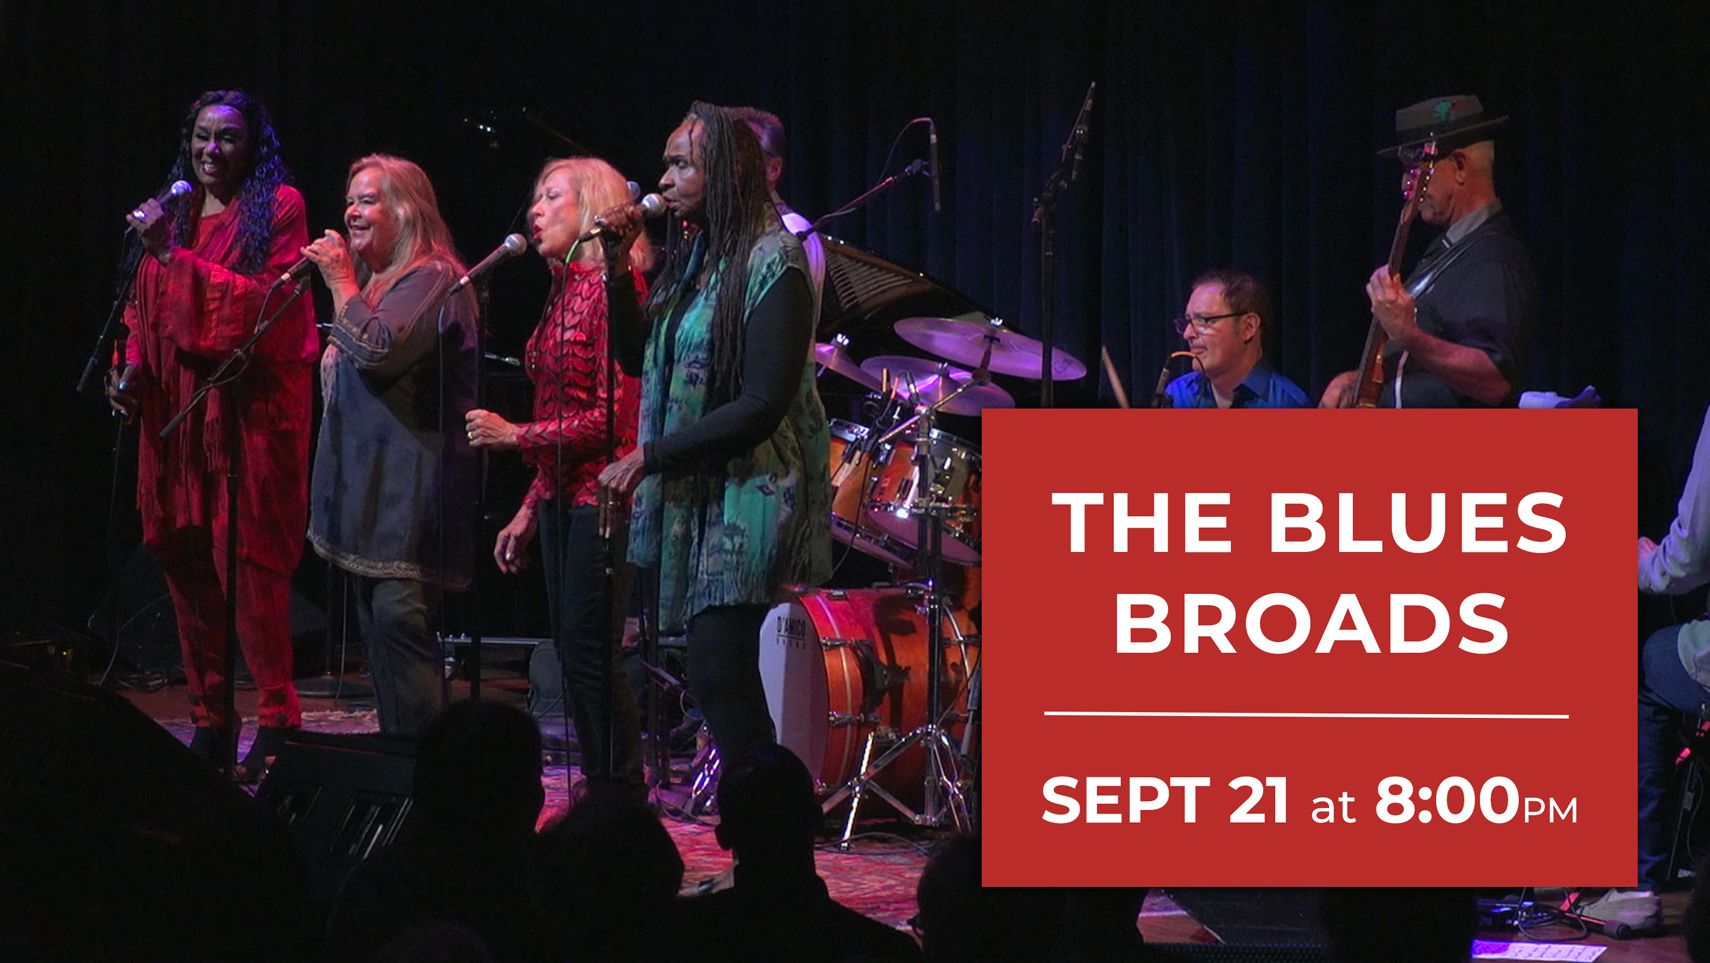 upcoming_shows_bluesbroads.jpg - 960.92 kB